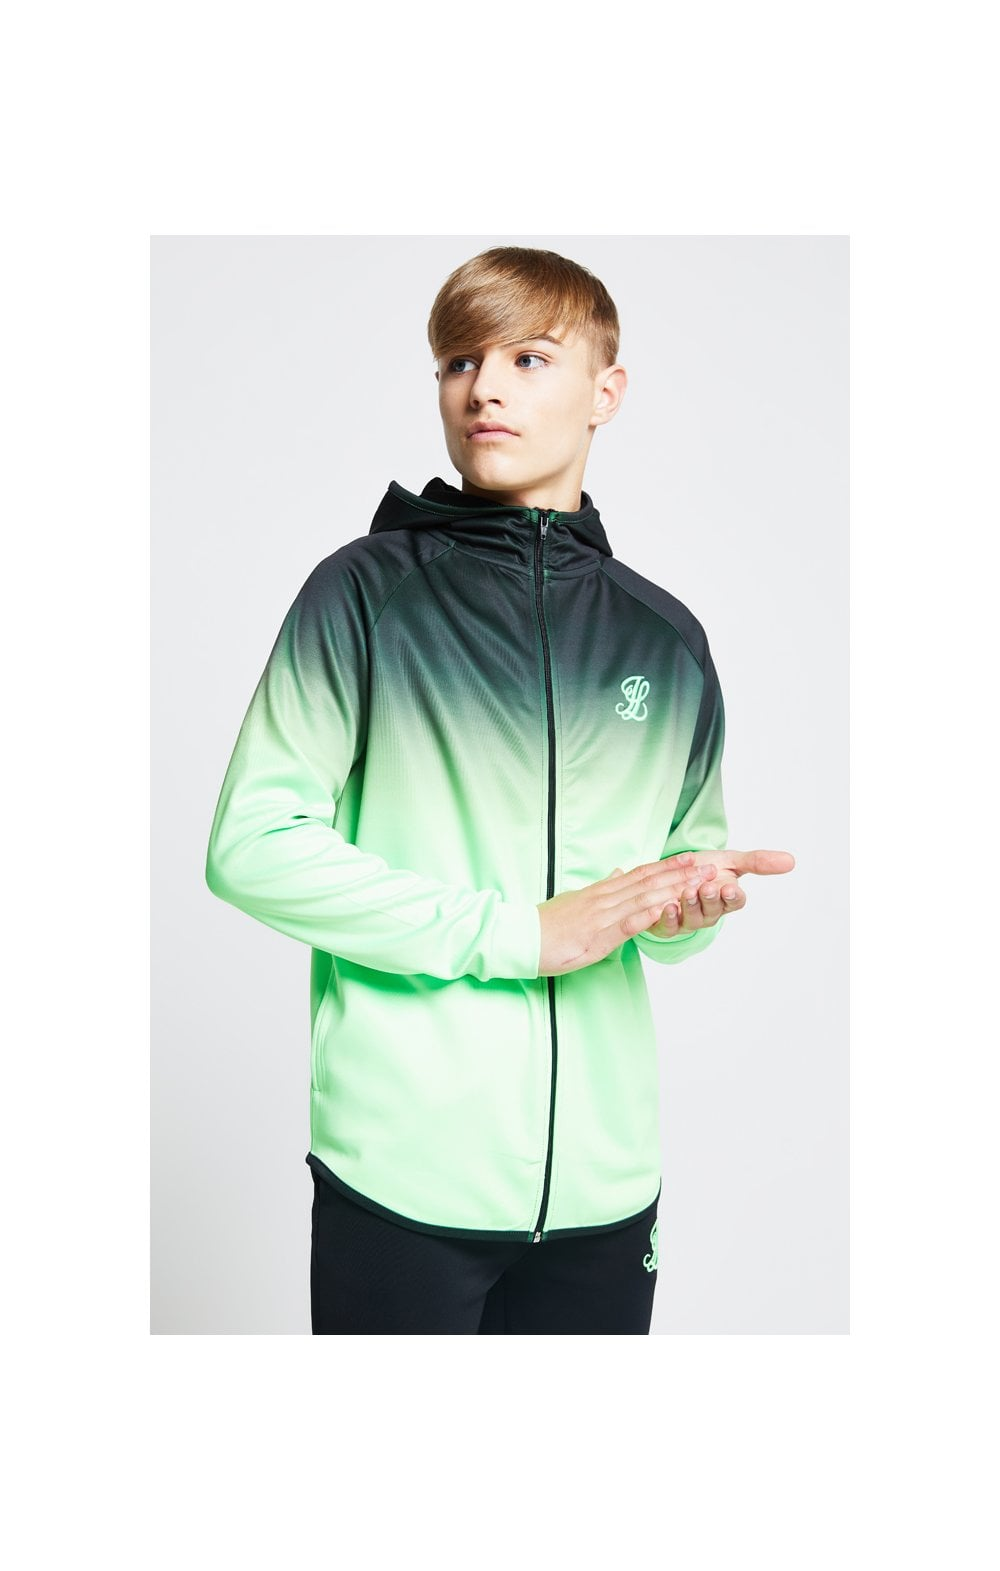 Load image into Gallery viewer, Illusive London Athlete Zip Through Hoodie - Black & Neon Green (1)